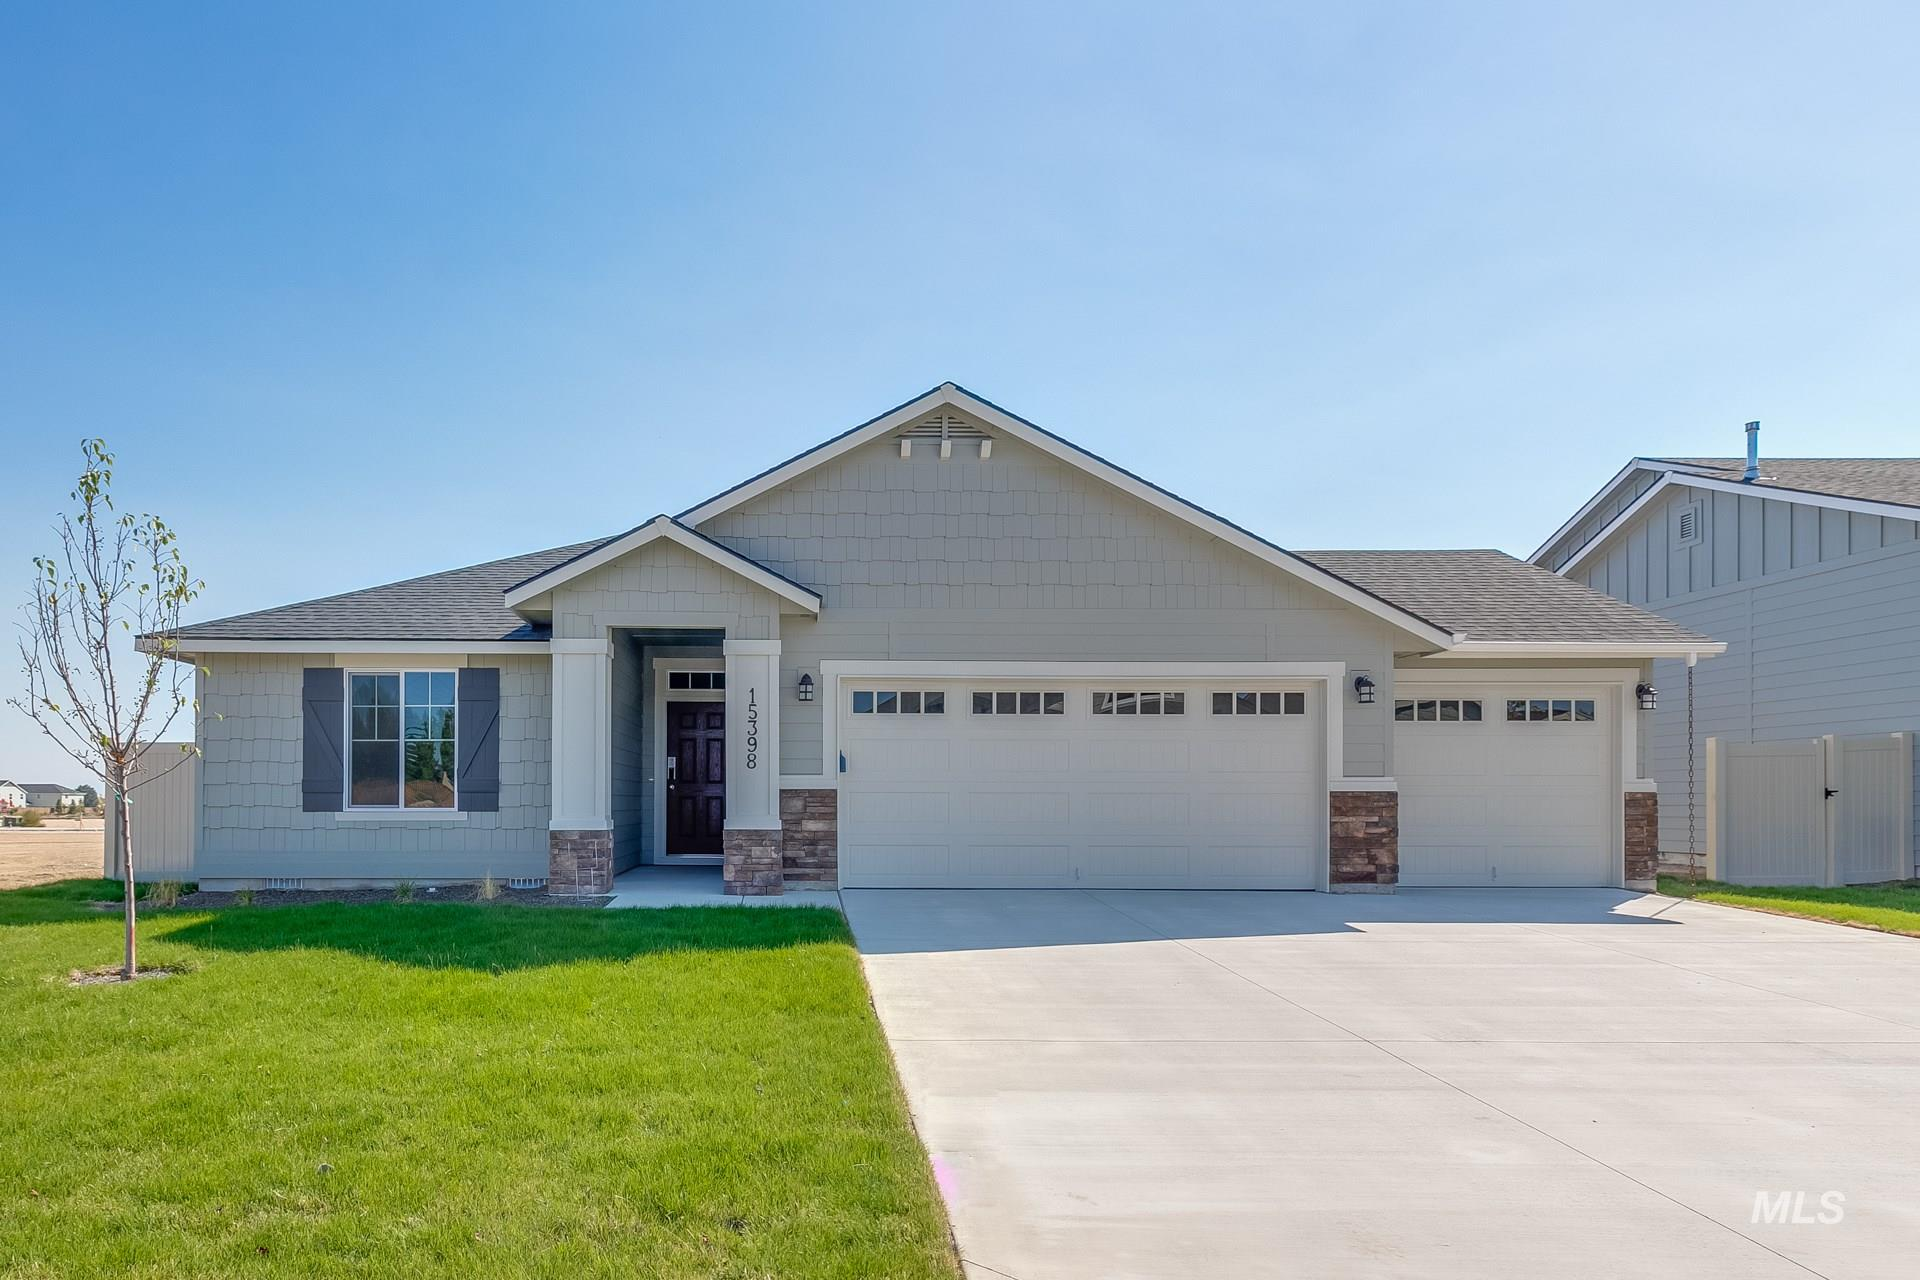 Photo for 15293 Hogback Way, Caldwell, ID 83607 (MLS # 98780262)